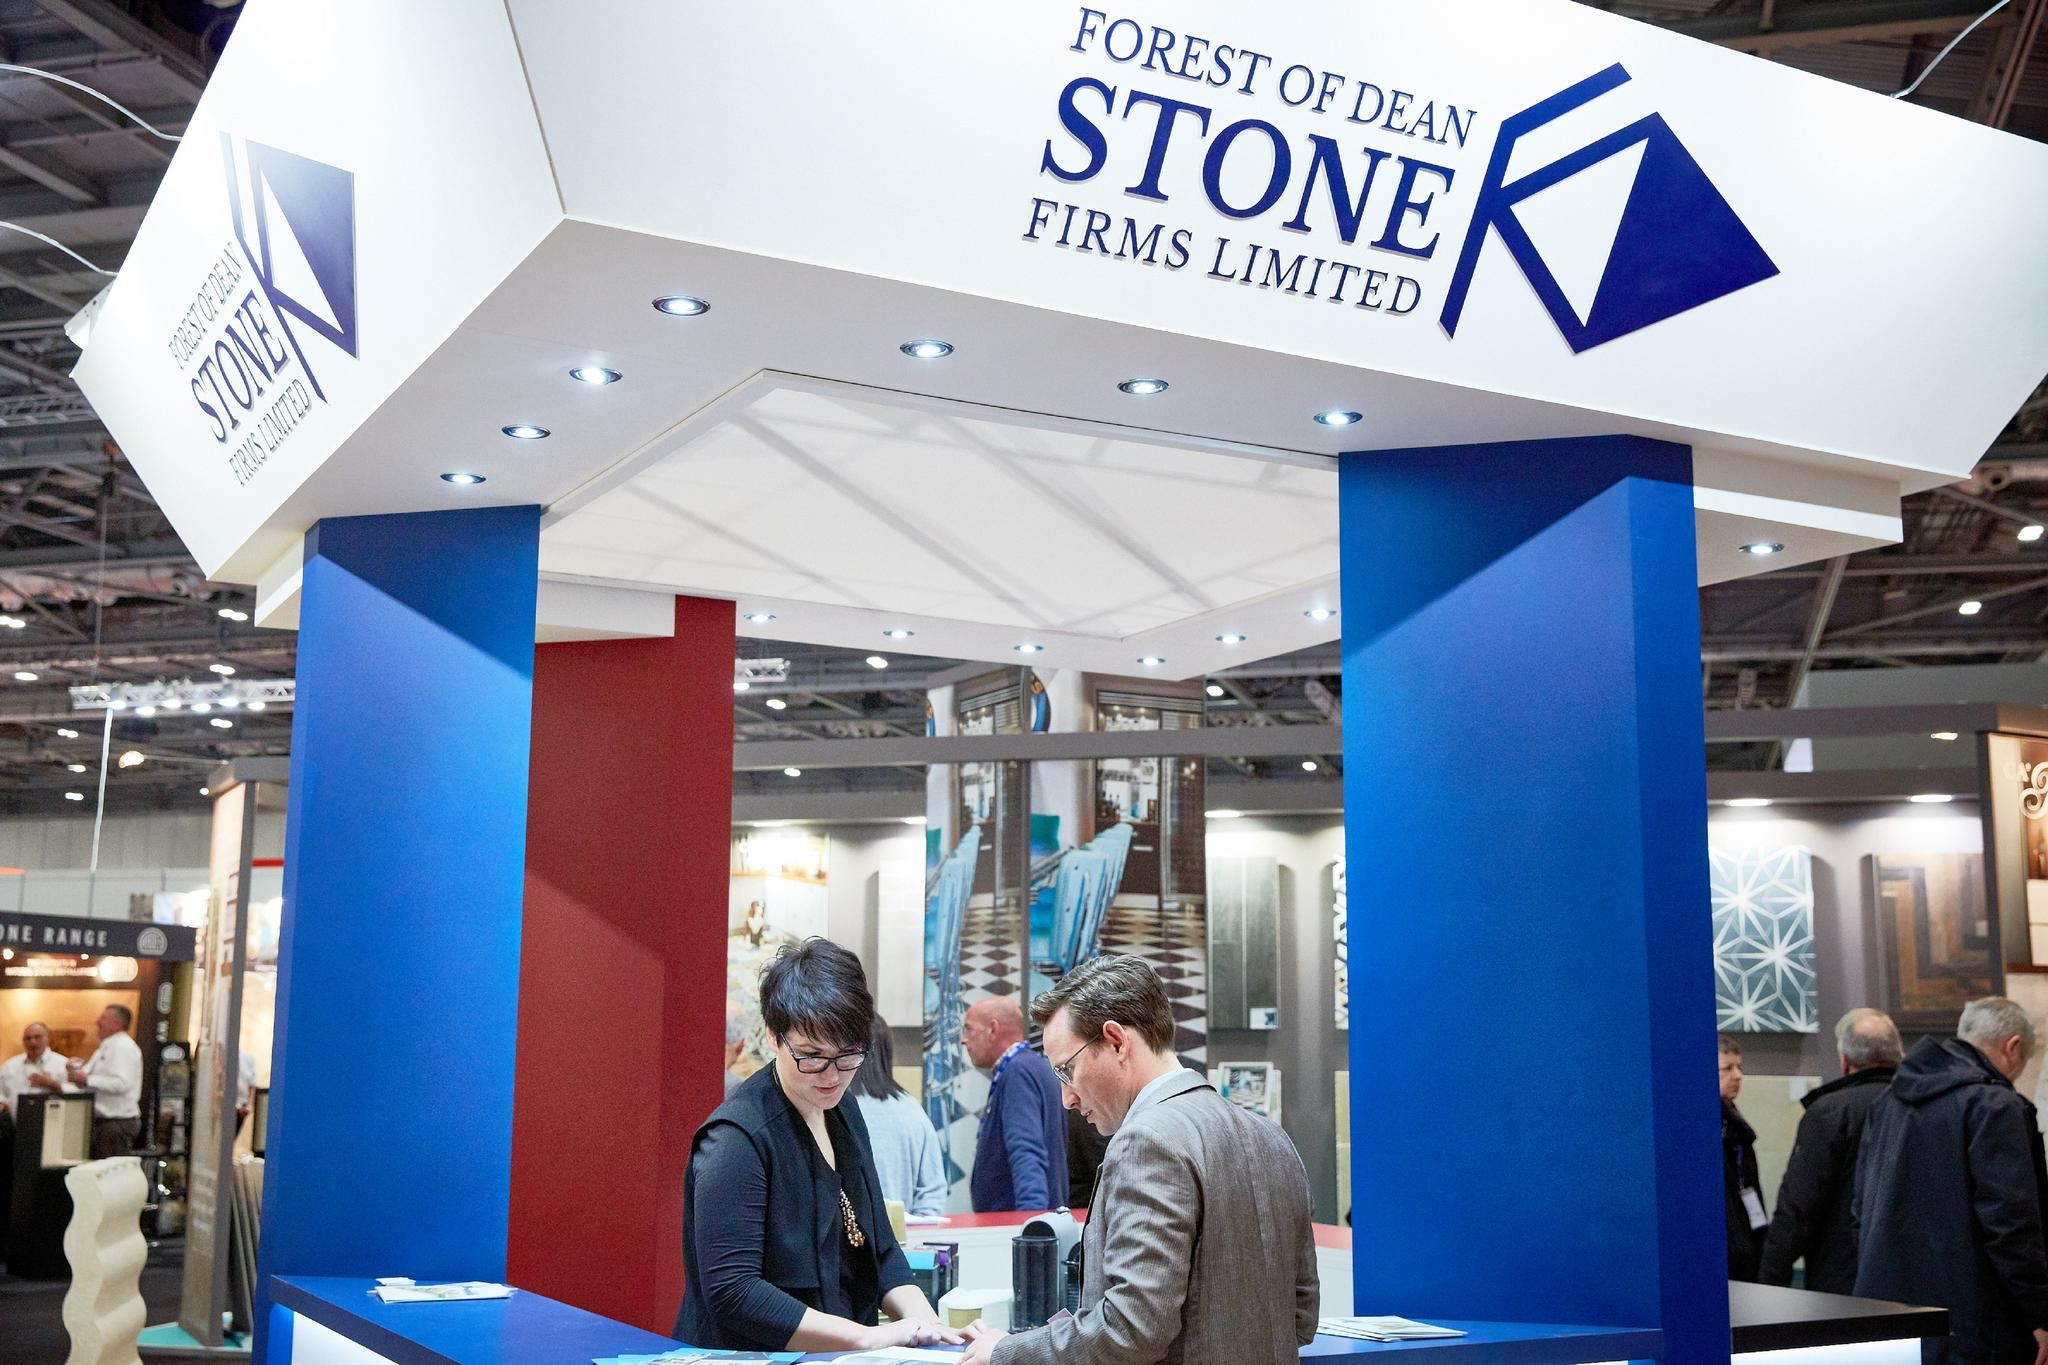 Forest of Dean stone at Natural Stone Show